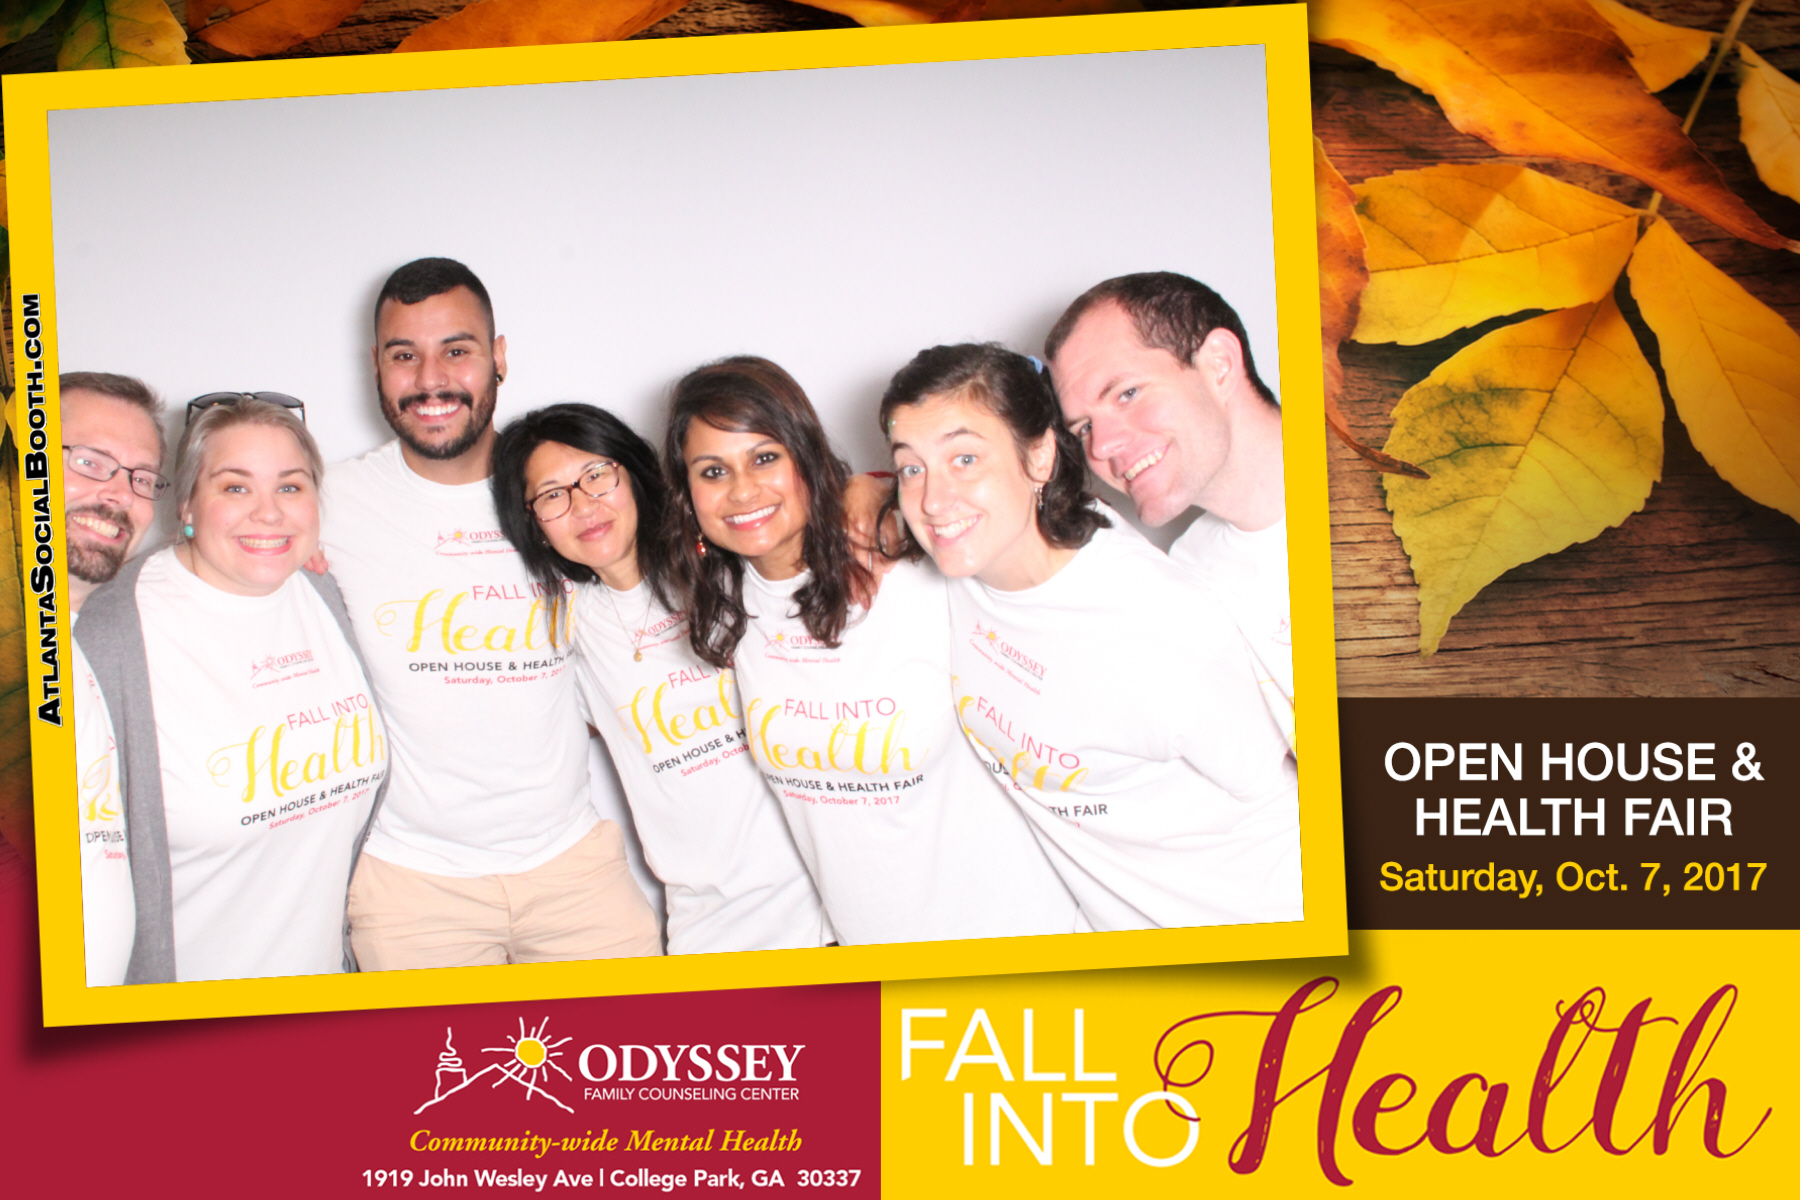 Odyssey Fall Into Health Fair